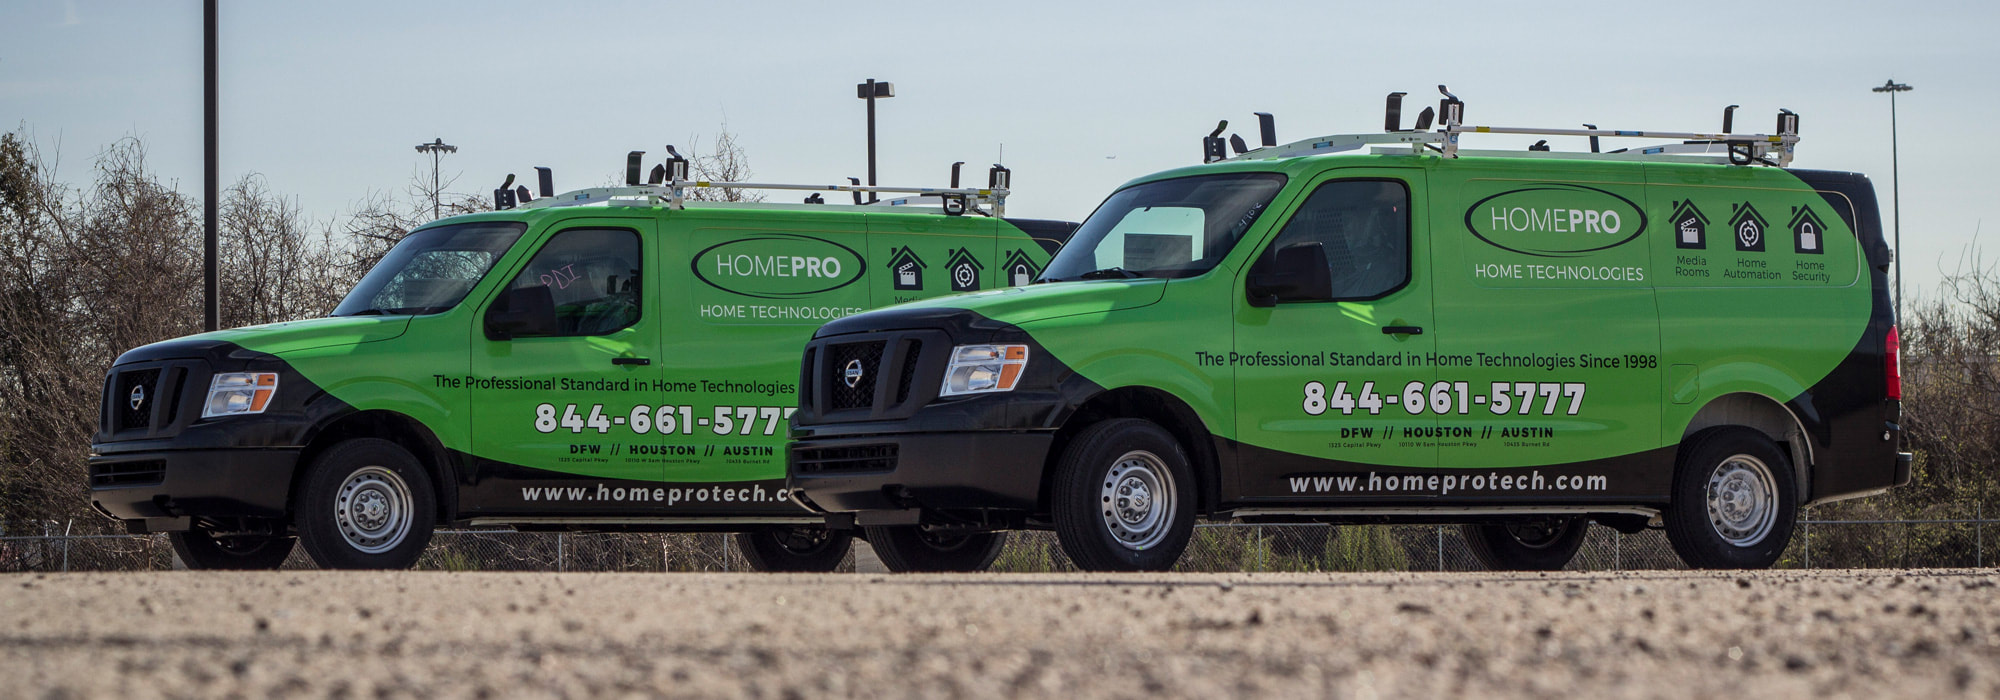 San Diego Commercial Fleet Vehicle Wraps